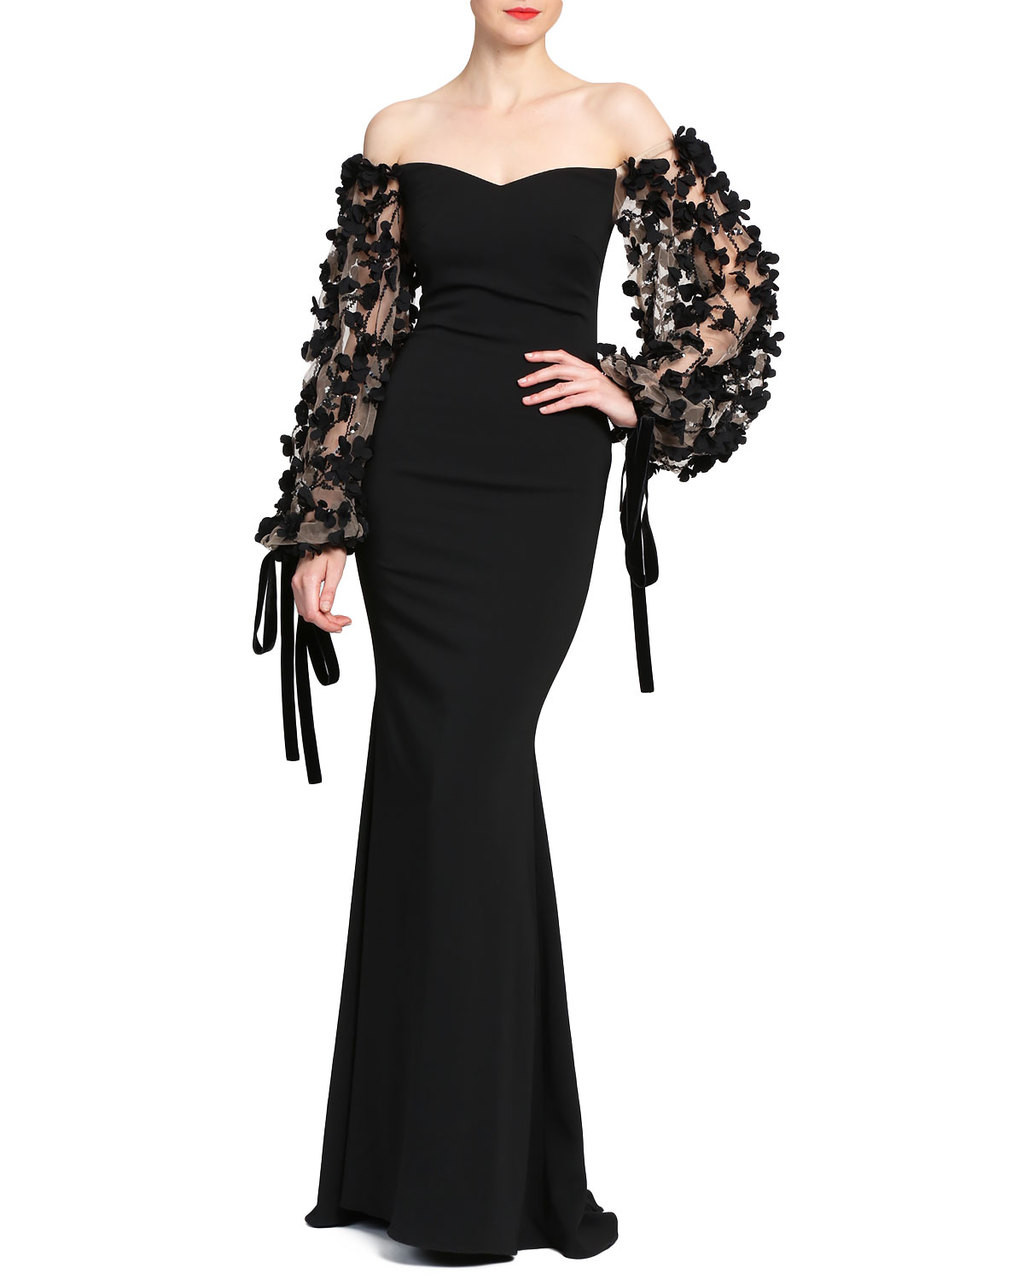 61b6d1520a92 Odessa Off the Shoulder Evening Gown by Badgley Mischka